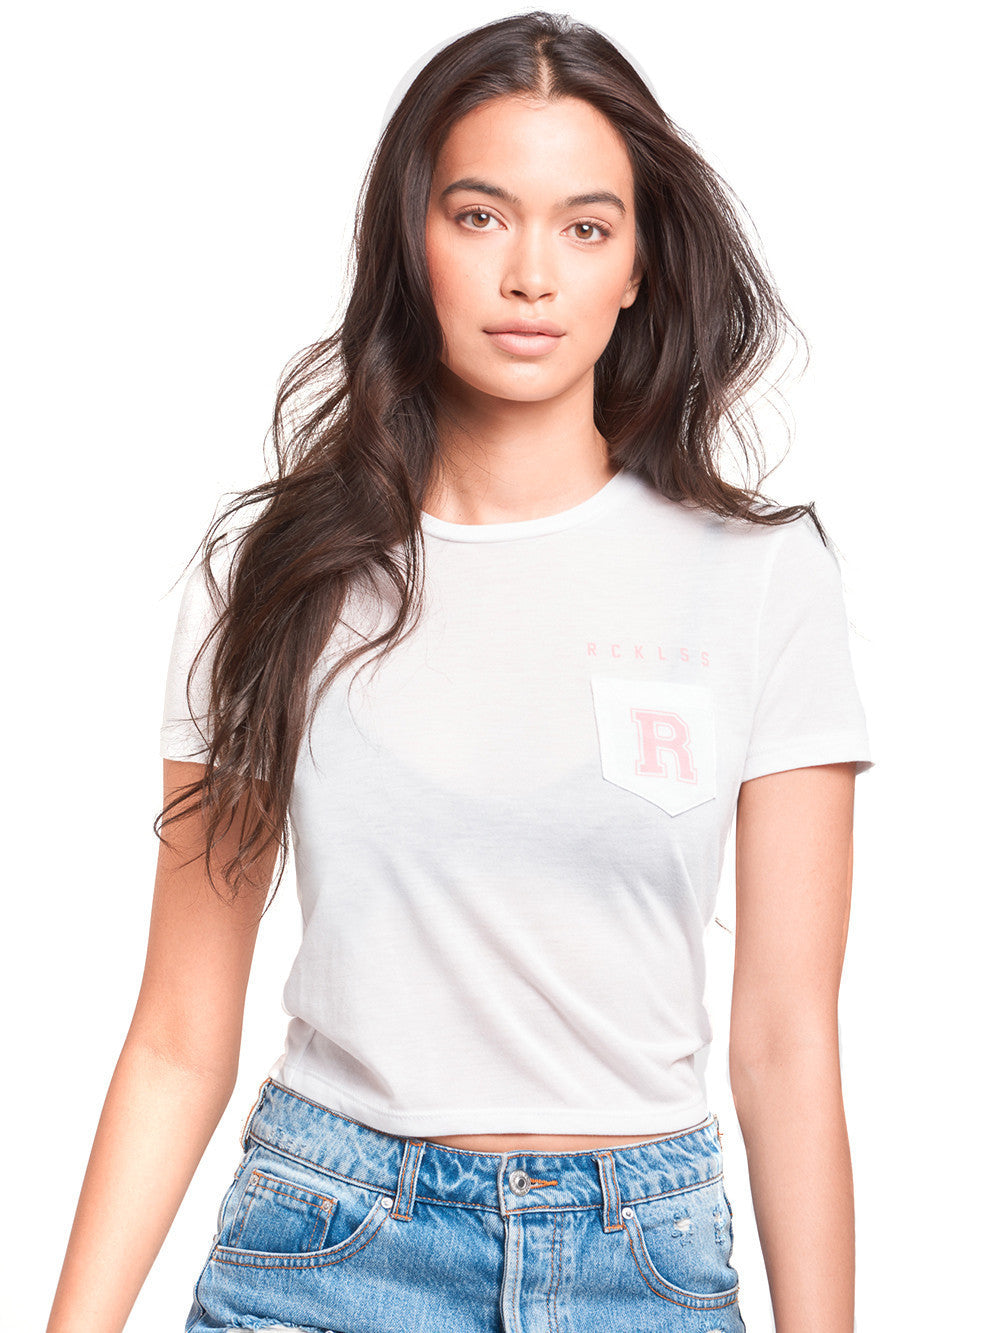 Slide by cropped pocket tee white for Pocket tee shirts for womens